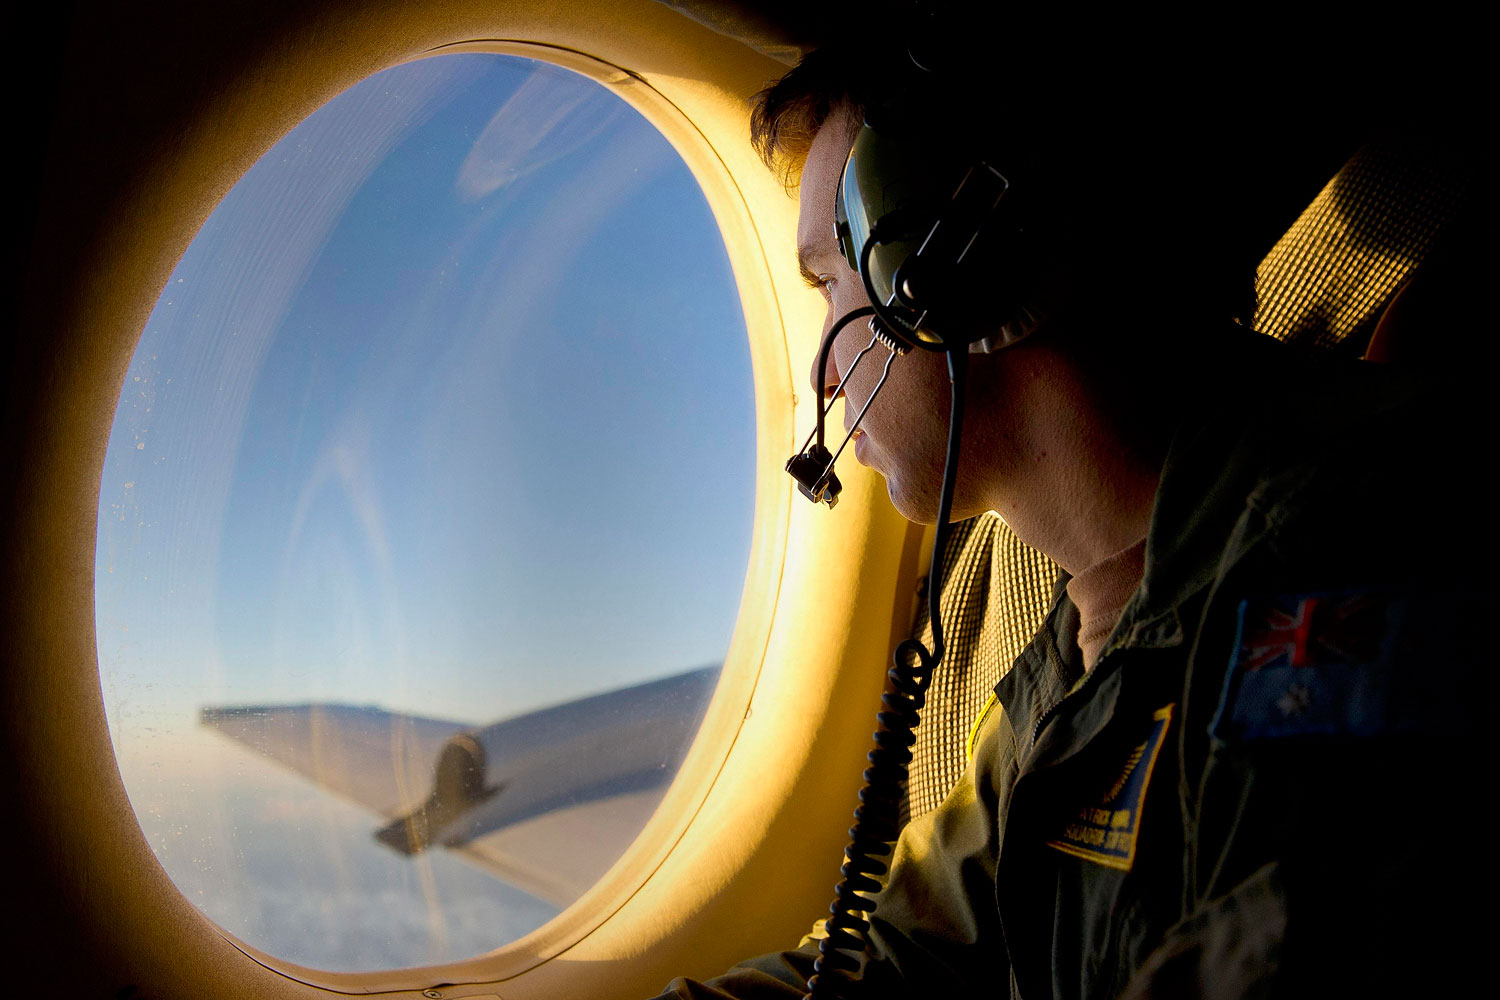 Royal Australian Air Force Airborne Electronics Analyst Sergeant Patrick Manser looks out of an observation window aboard a RAAF AP-3C Orion aircraft during the search in the southern Indian Ocean for debris from the missing Malaysian Airlines flight MH370.